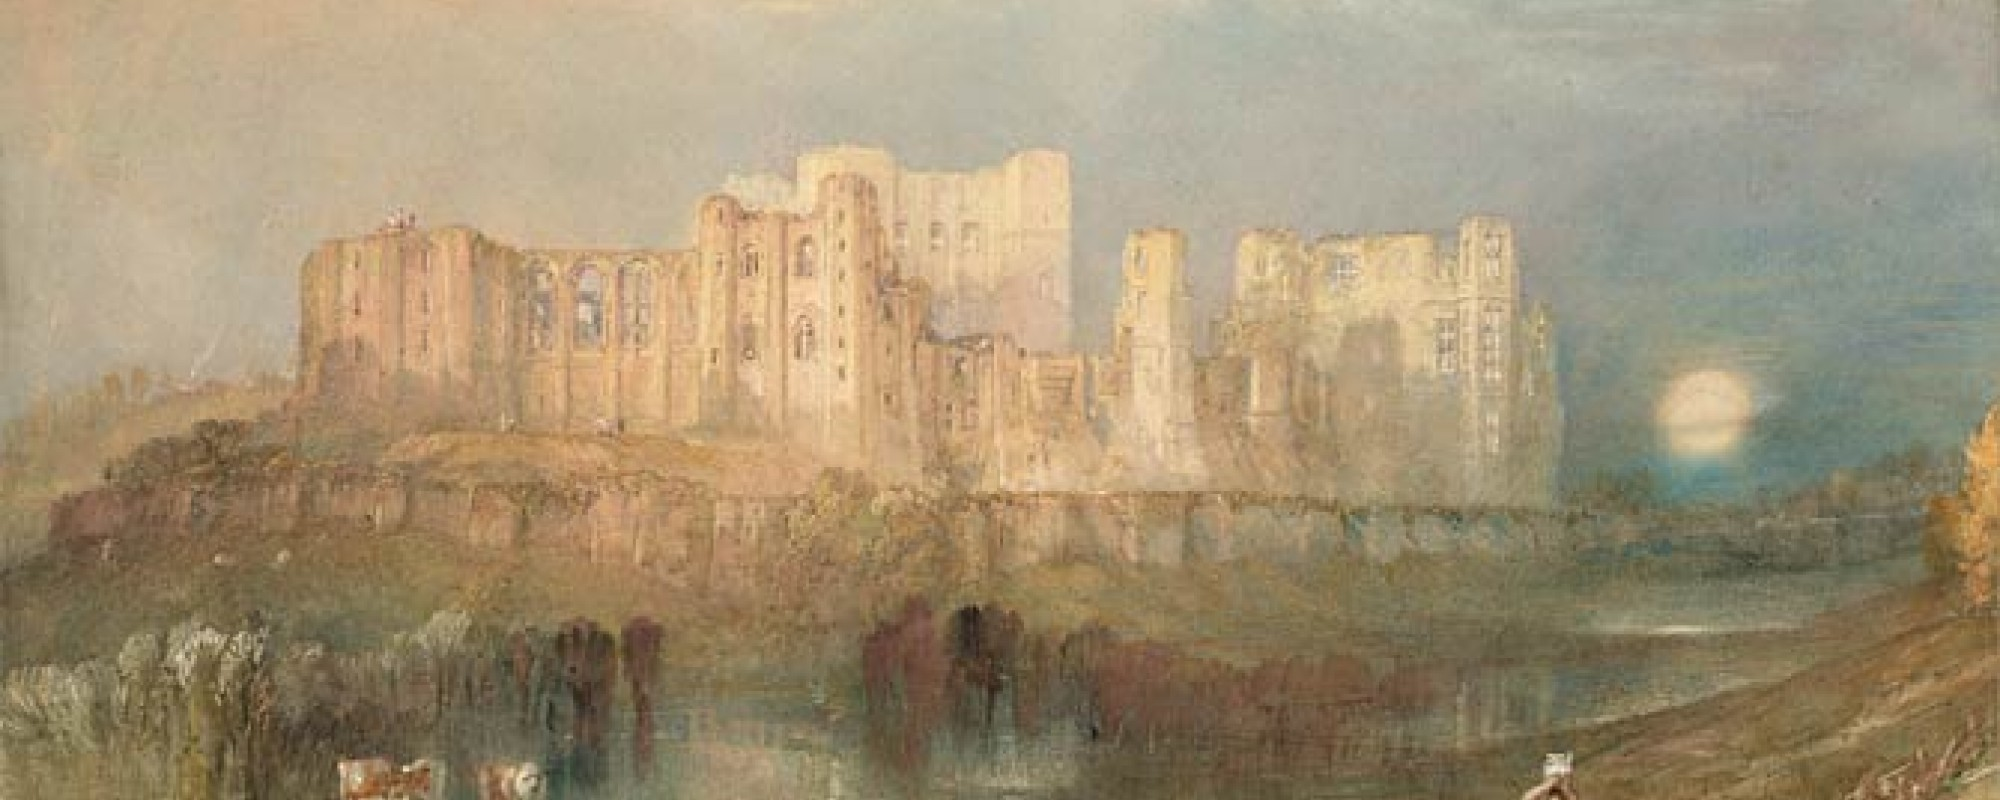 Joseph Mallord William Turner, View of Kenilworth Castle